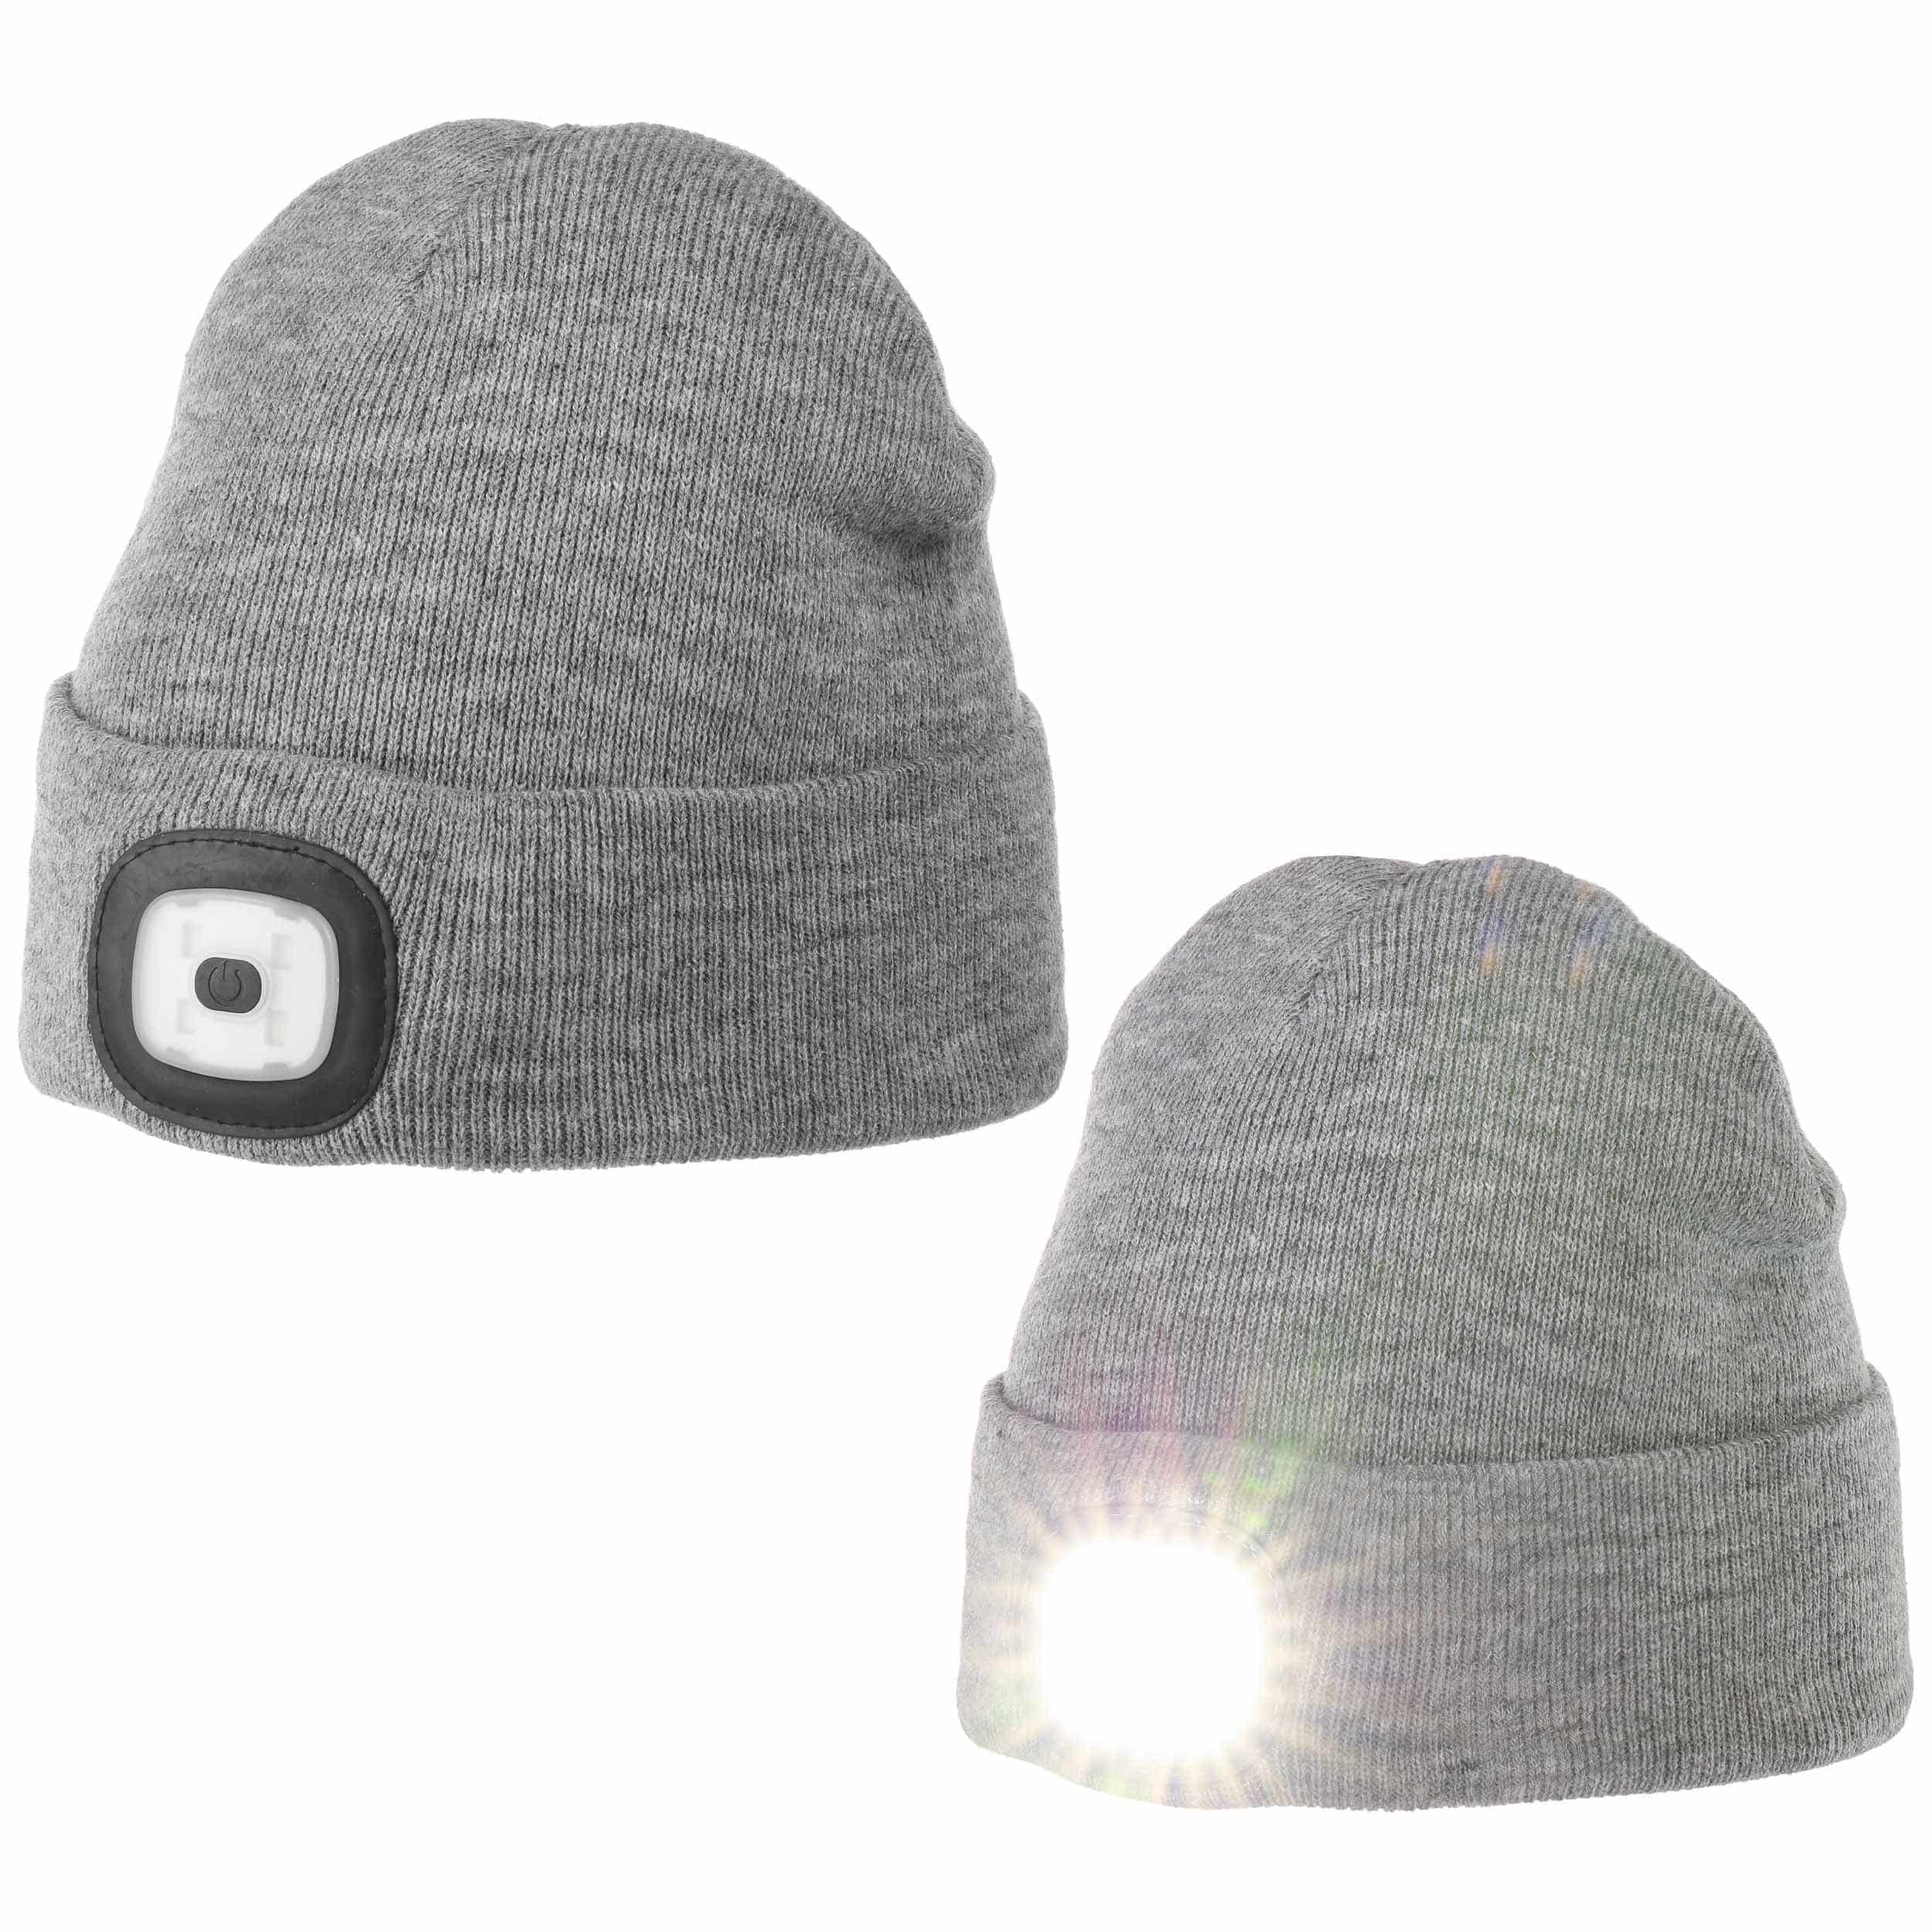 ... Chilllight Cuffed Beanie with LED by Chillouts - grey 6 bfd331169ccd